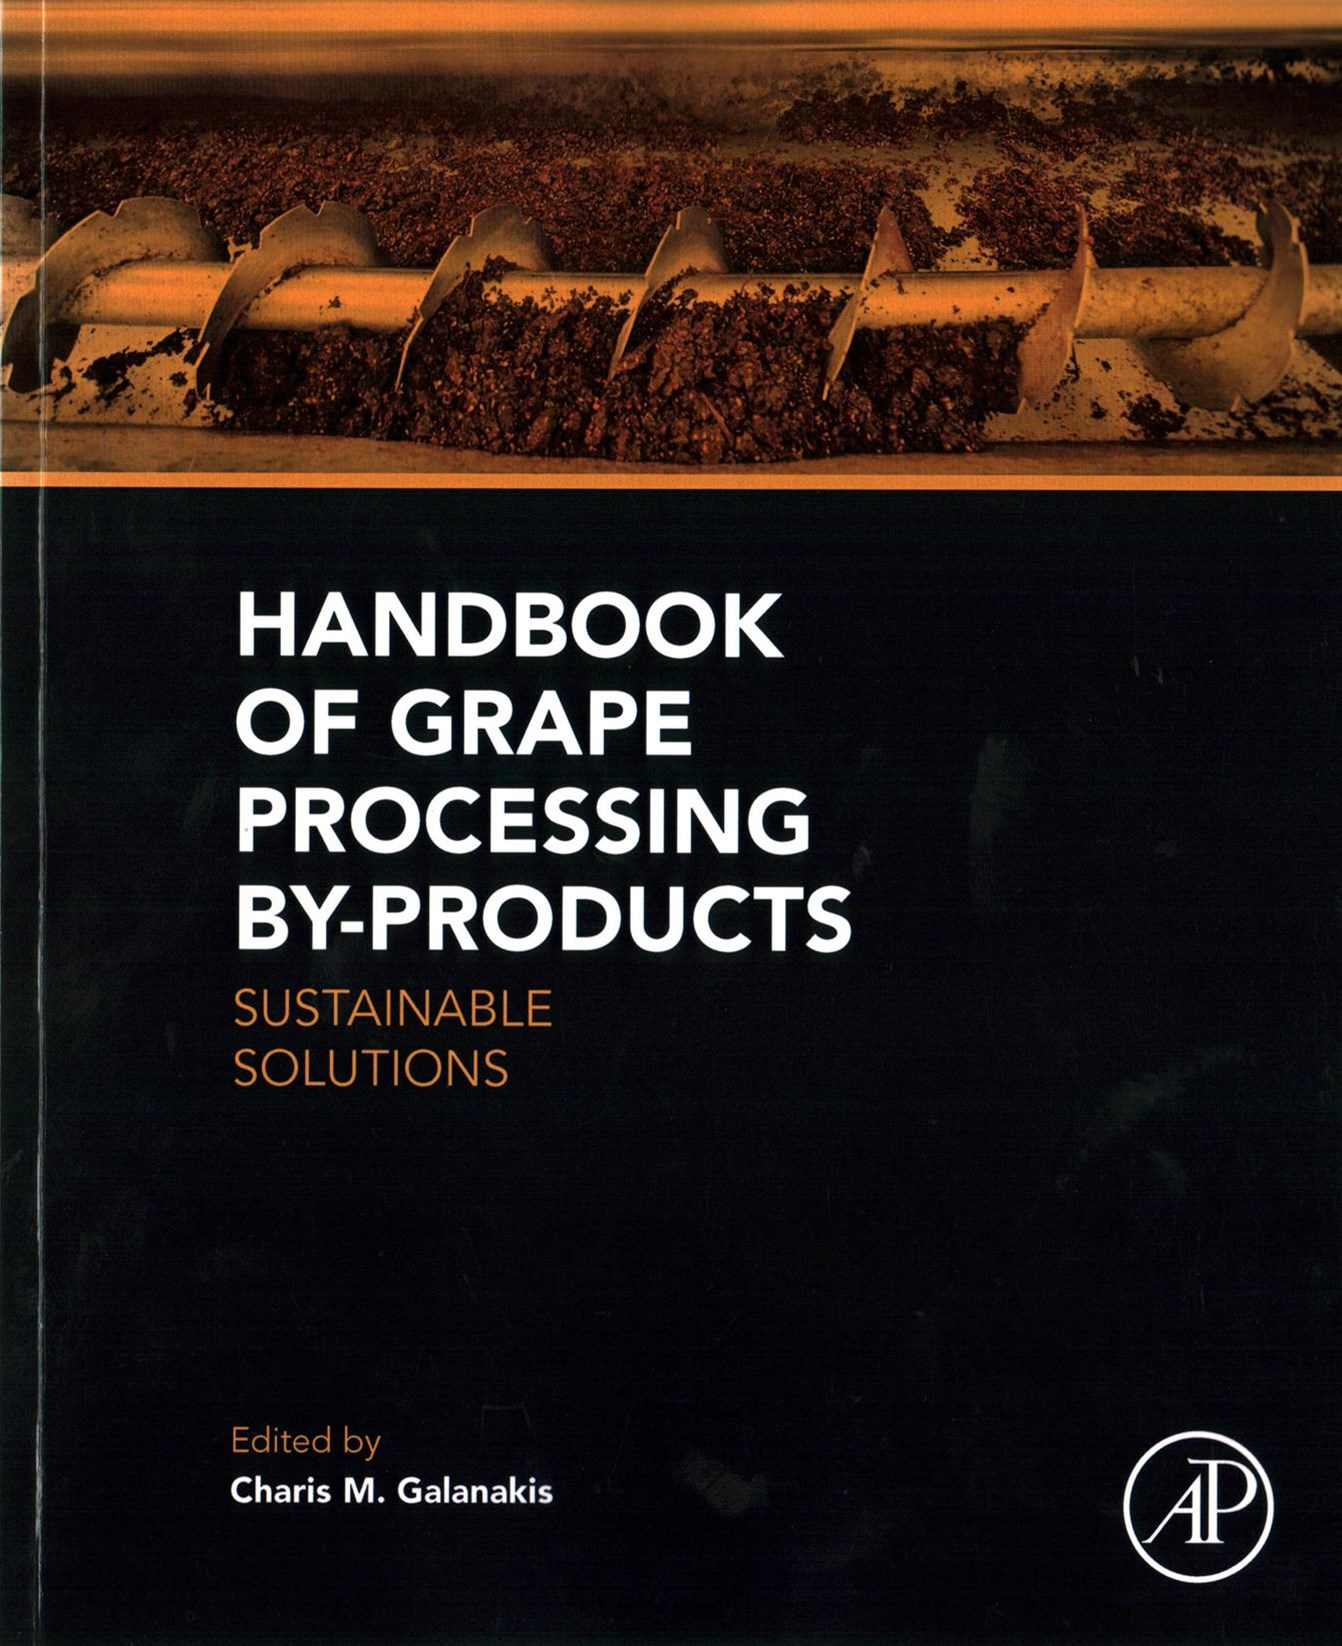 Handbook of Grape Processing by-Products